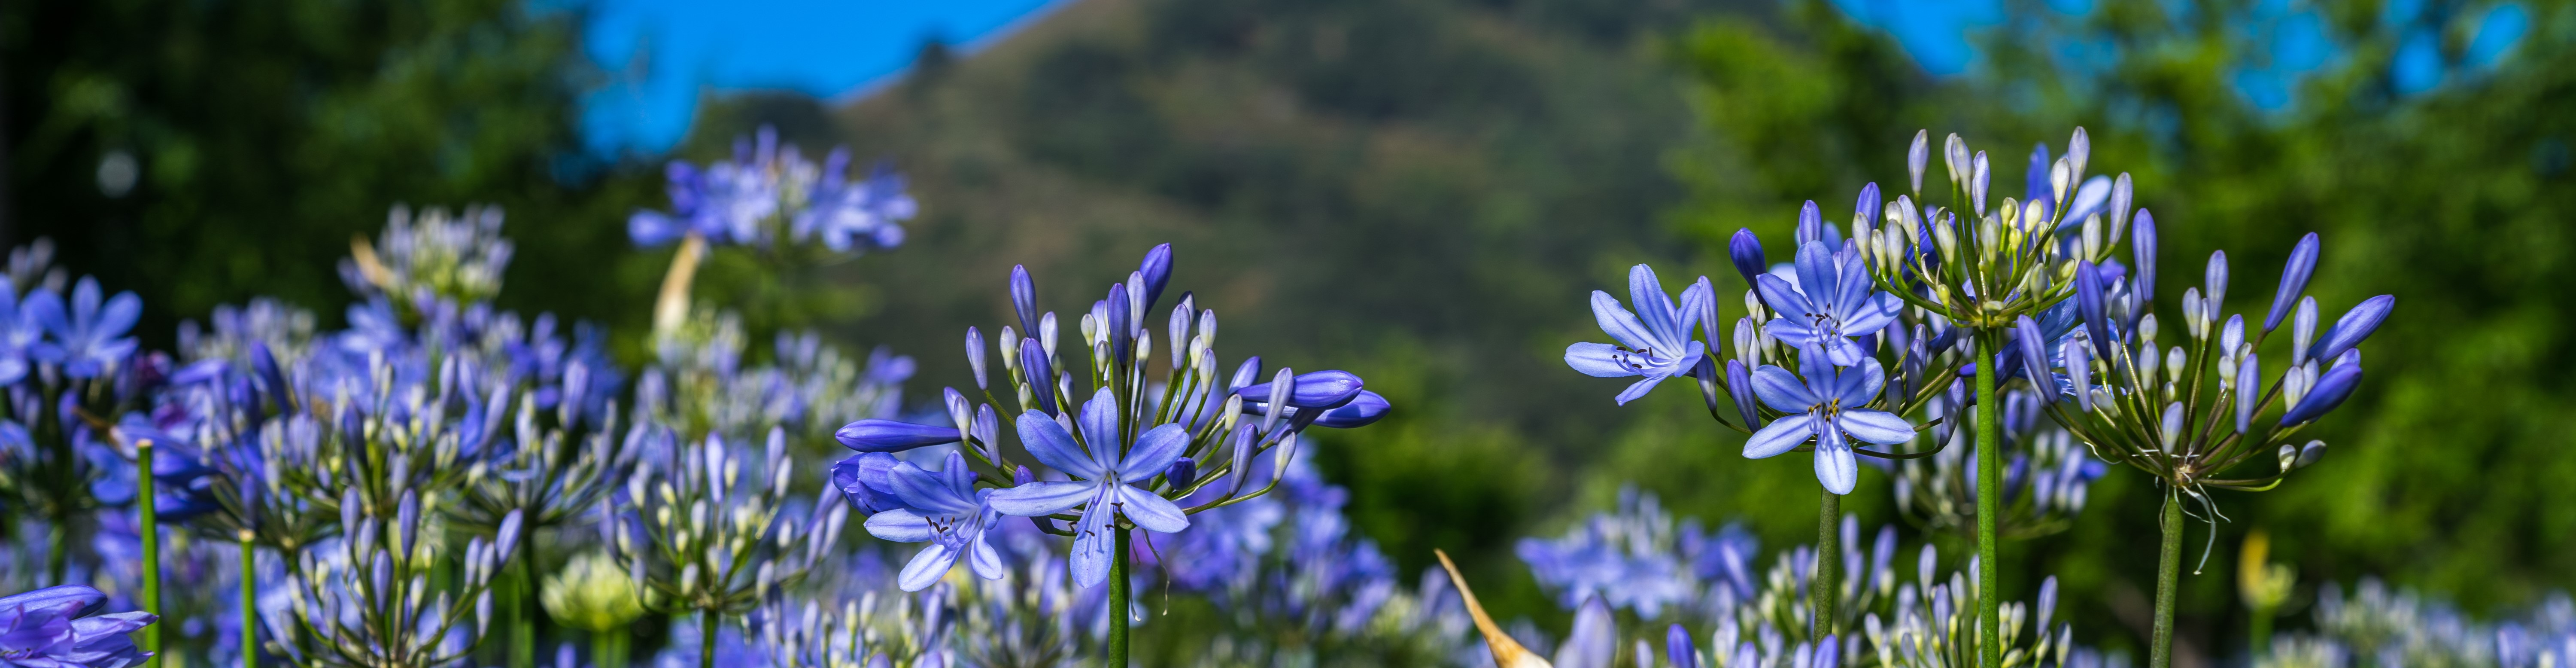 image of agapanthus flowers